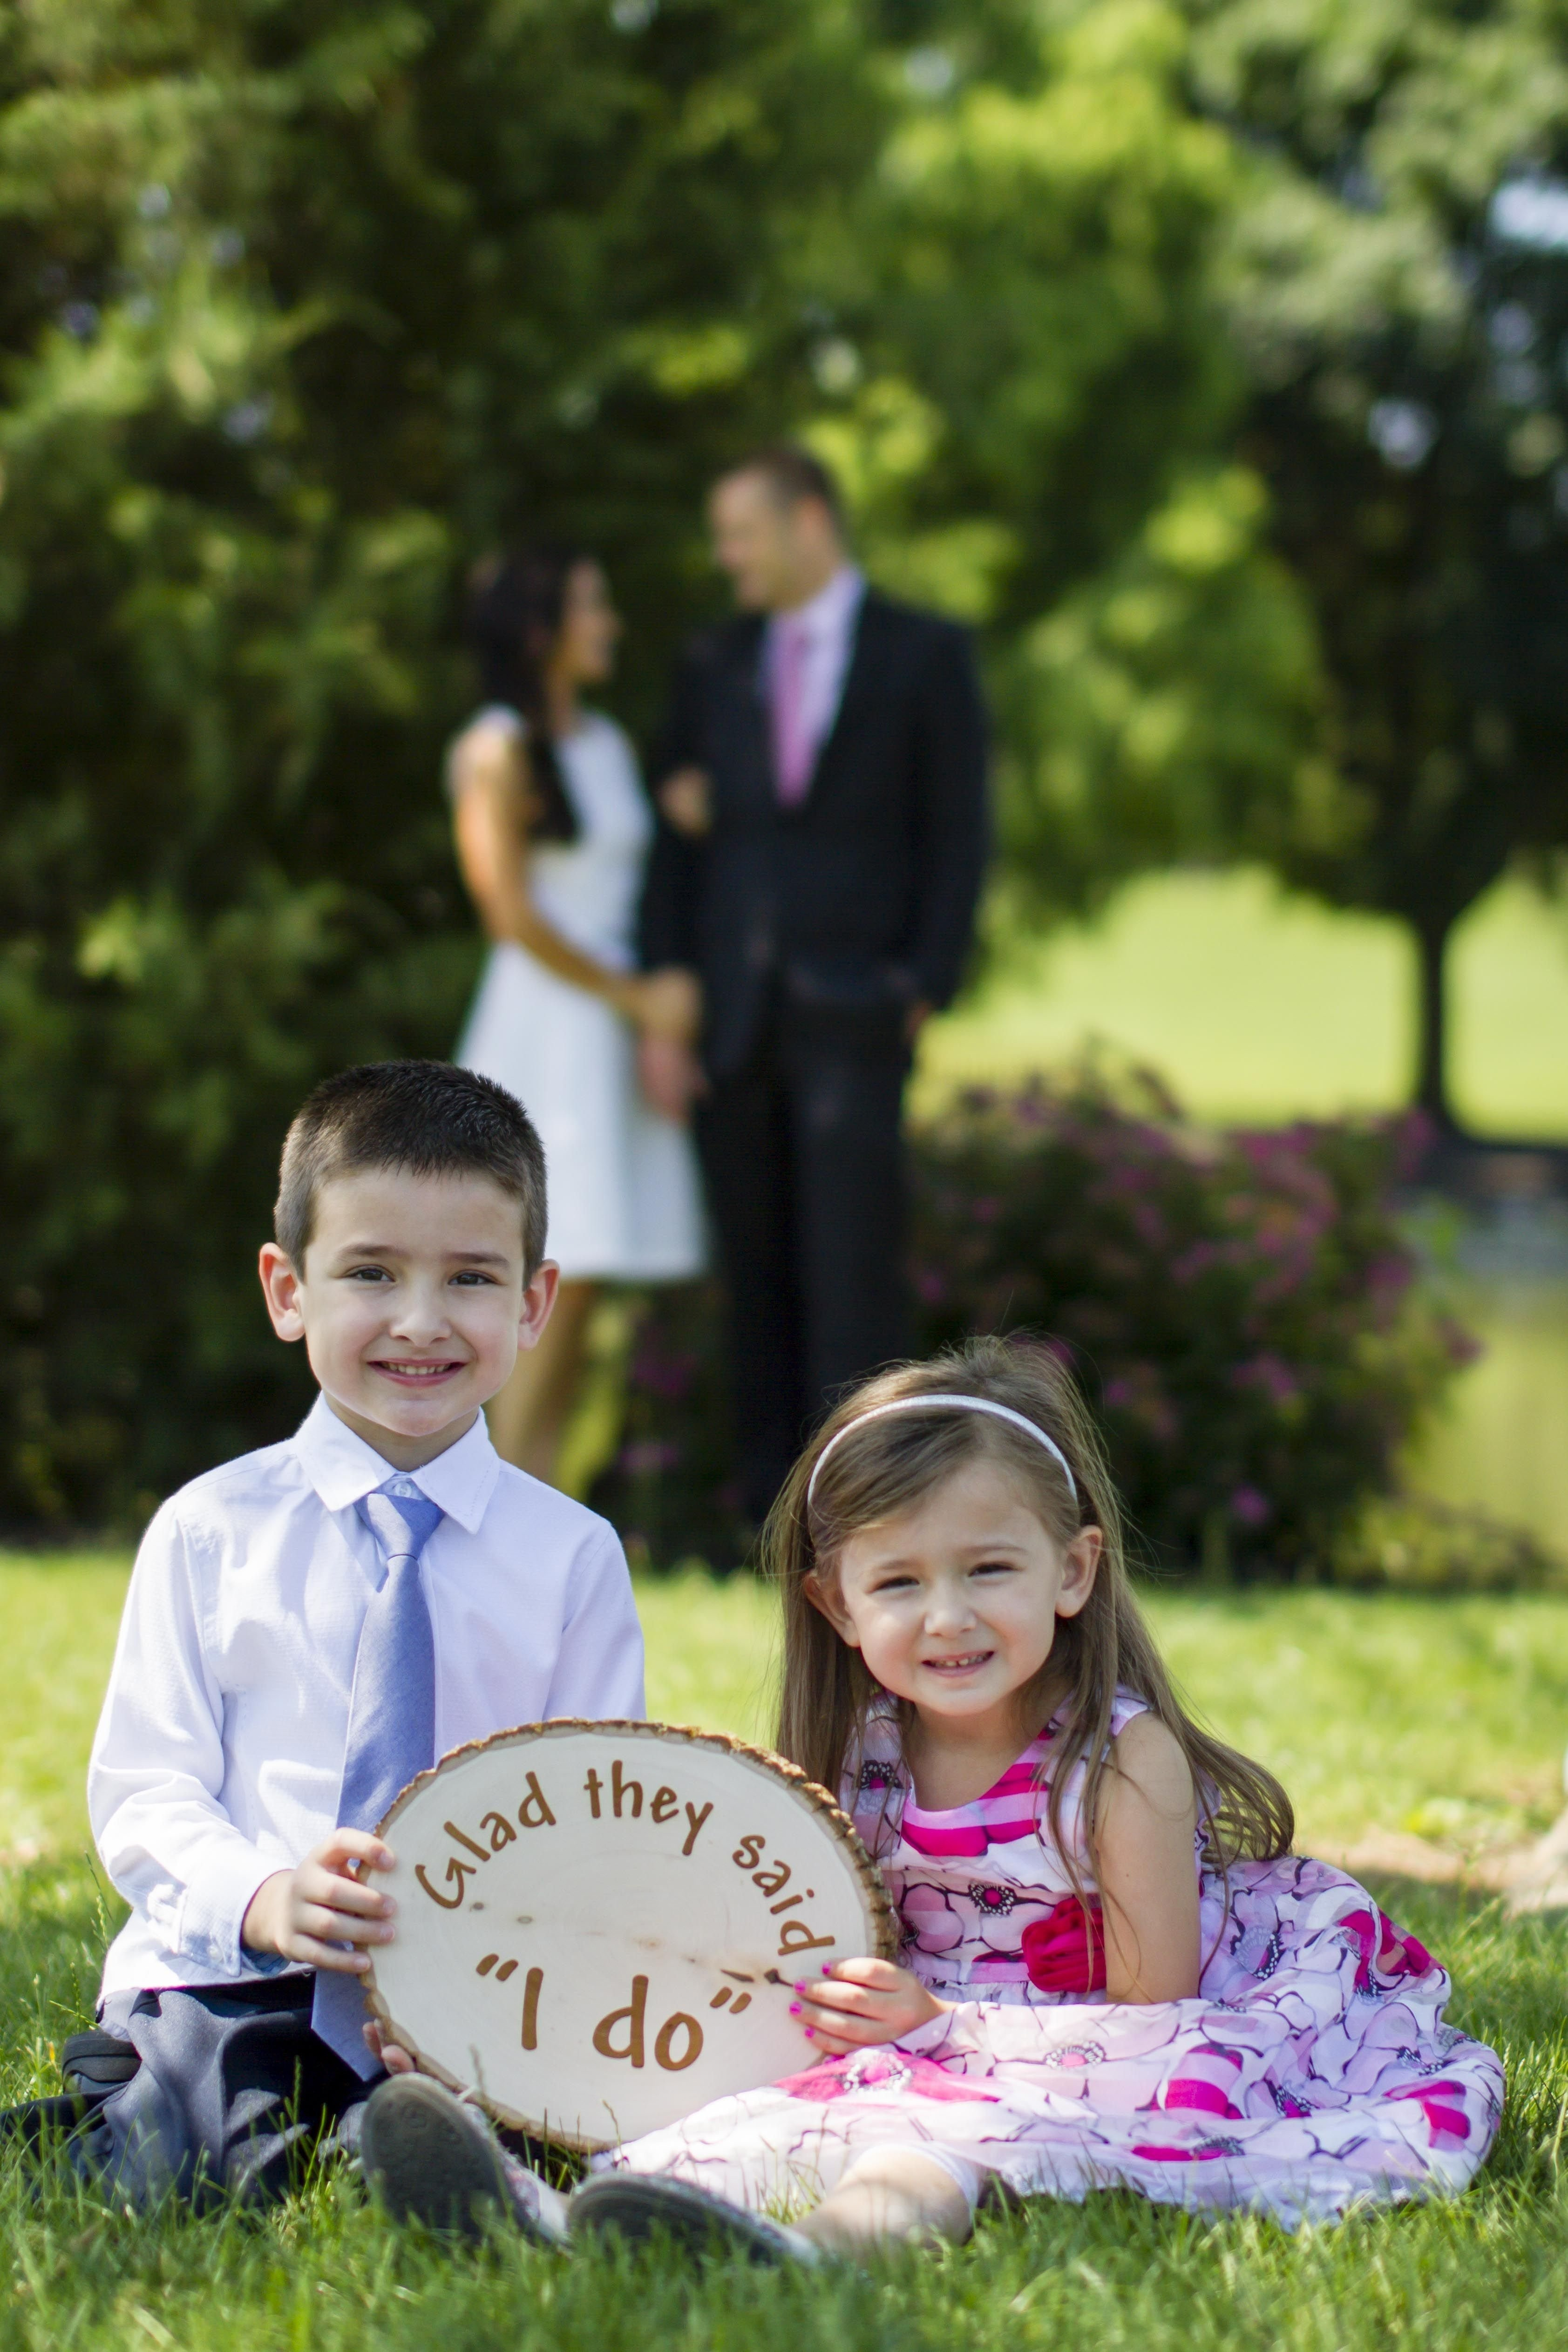 10 Most Popular 10 Year Vow Renewal Ideas 10 year anniversary photo idea with the kids 10 year anniversary 3 2020